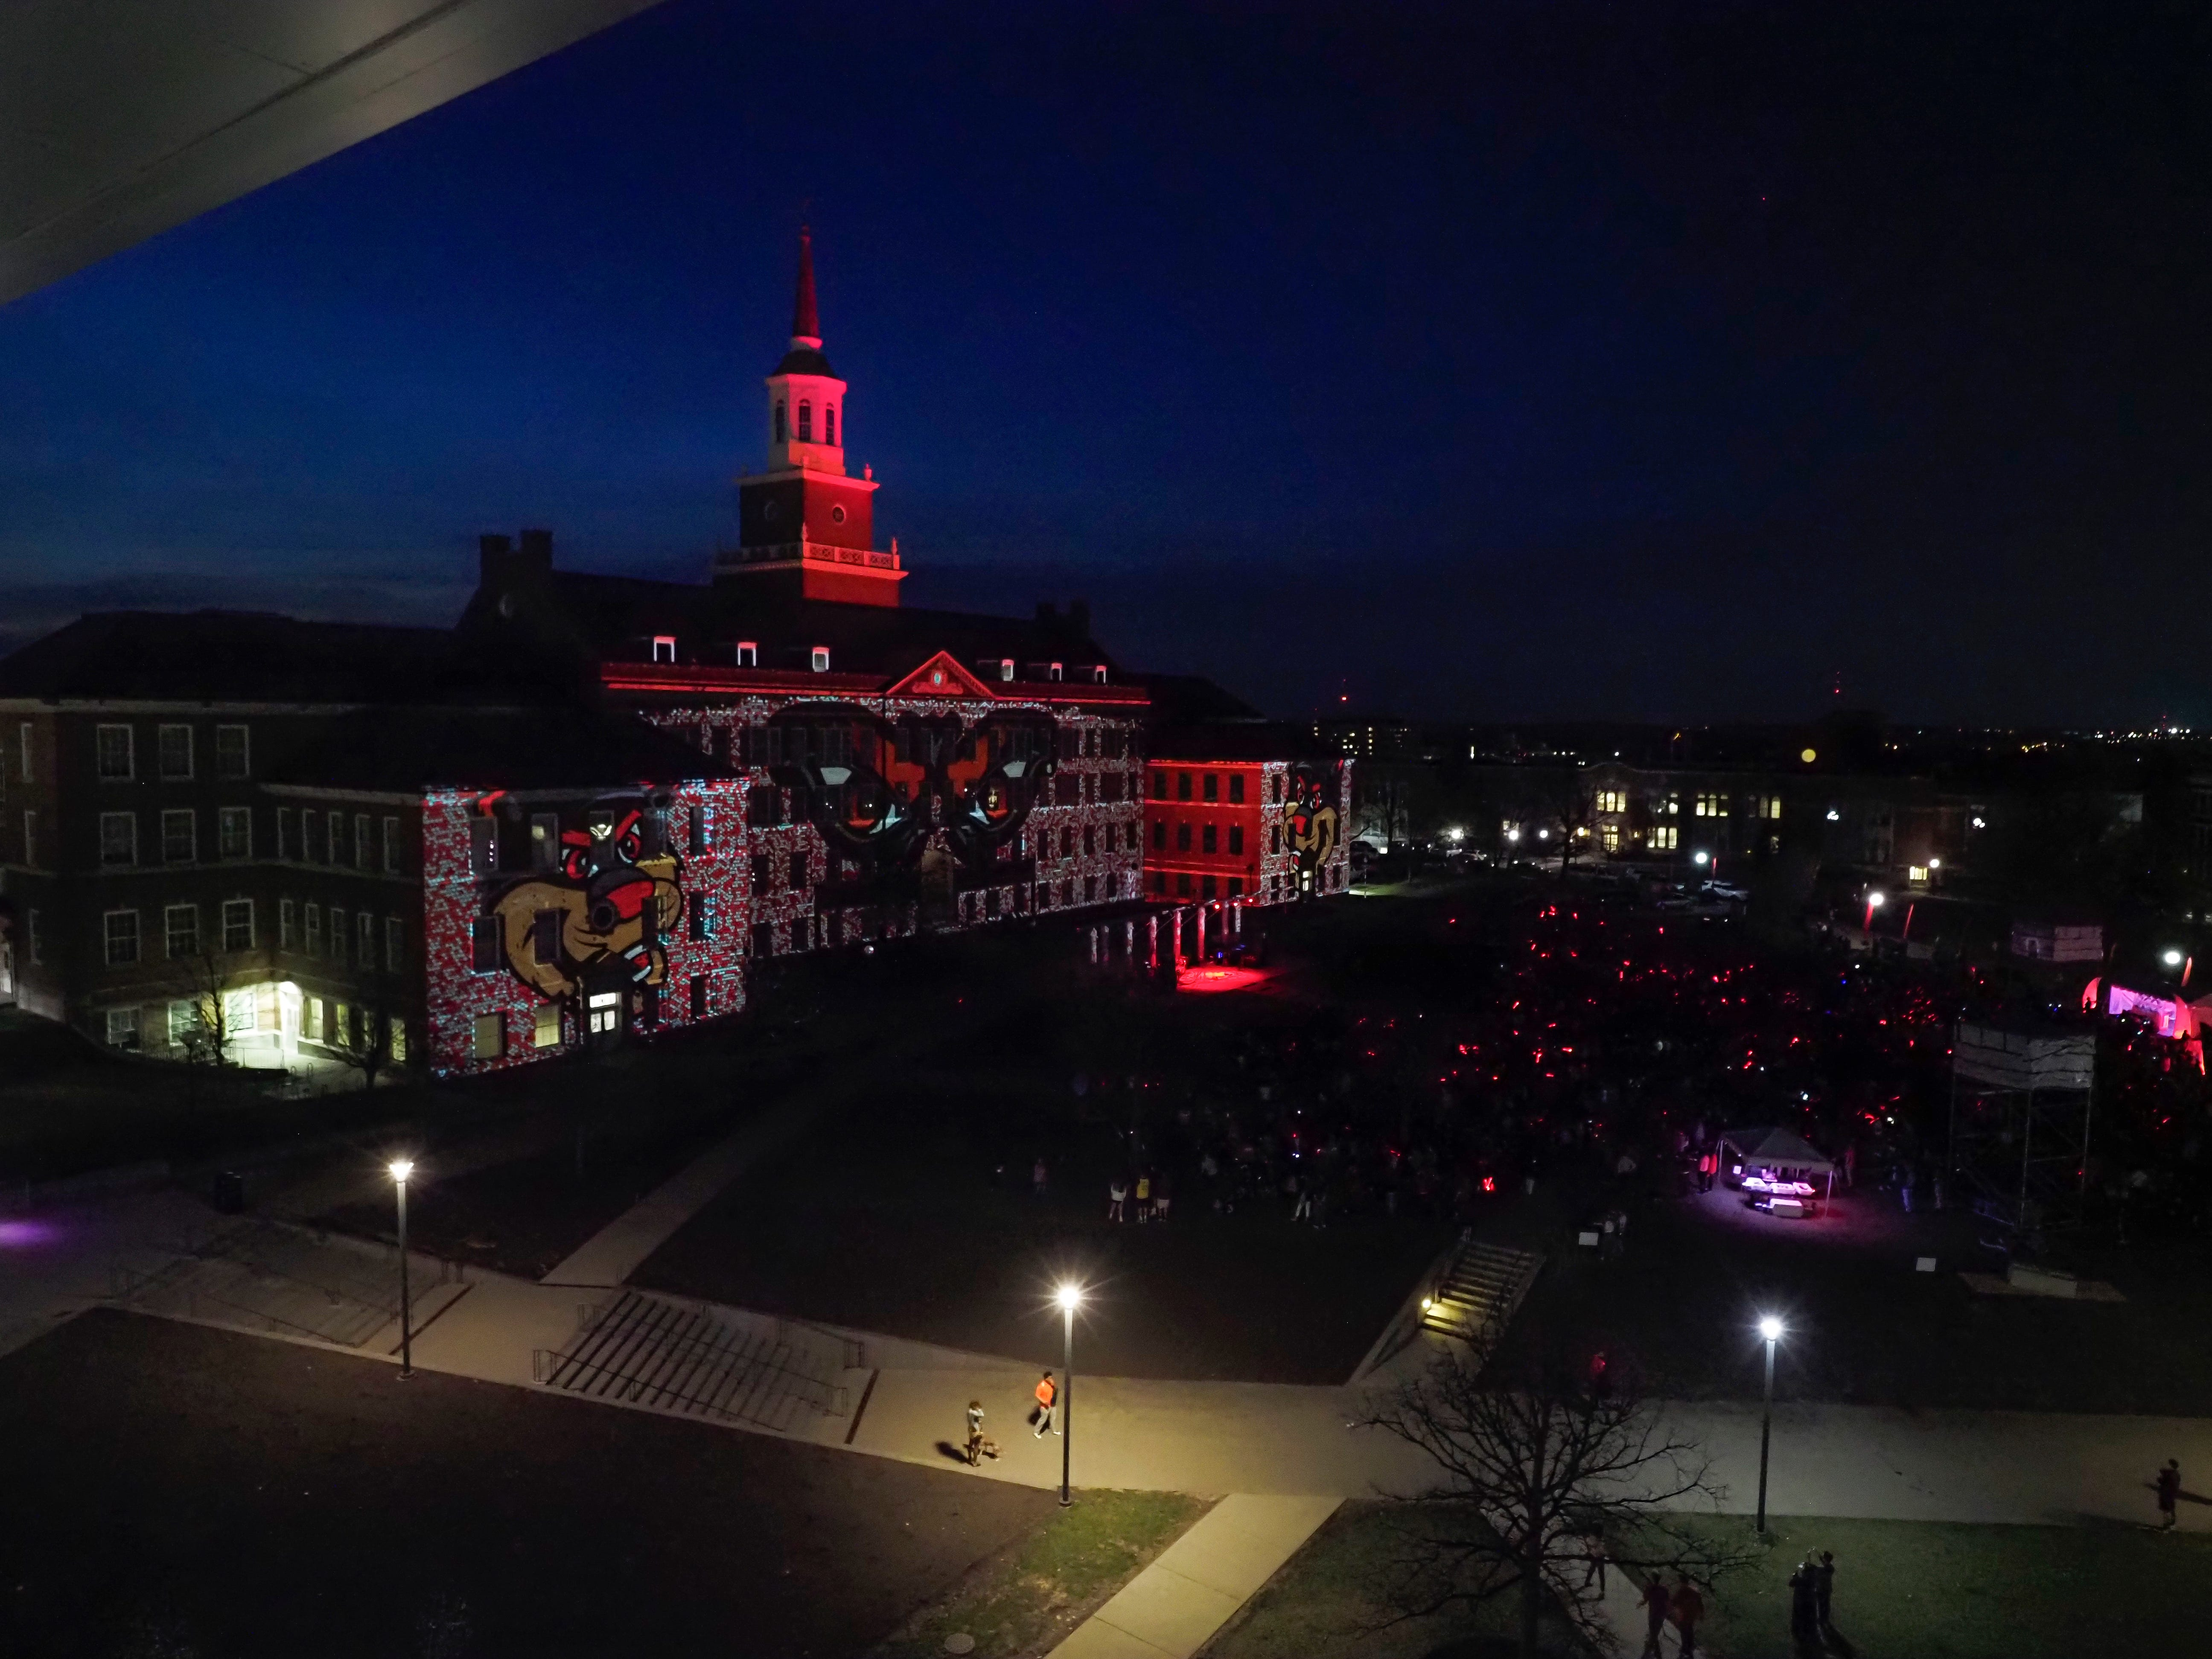 Bearcat images dispalyed on McMicken Hall during Community Day to celebrate UC's Bicentennial Saturday April 6, 2019 at McMicken Commons on the campus of the University of Cincinnati. Photo by Jay Yocis/University of Cincinnati